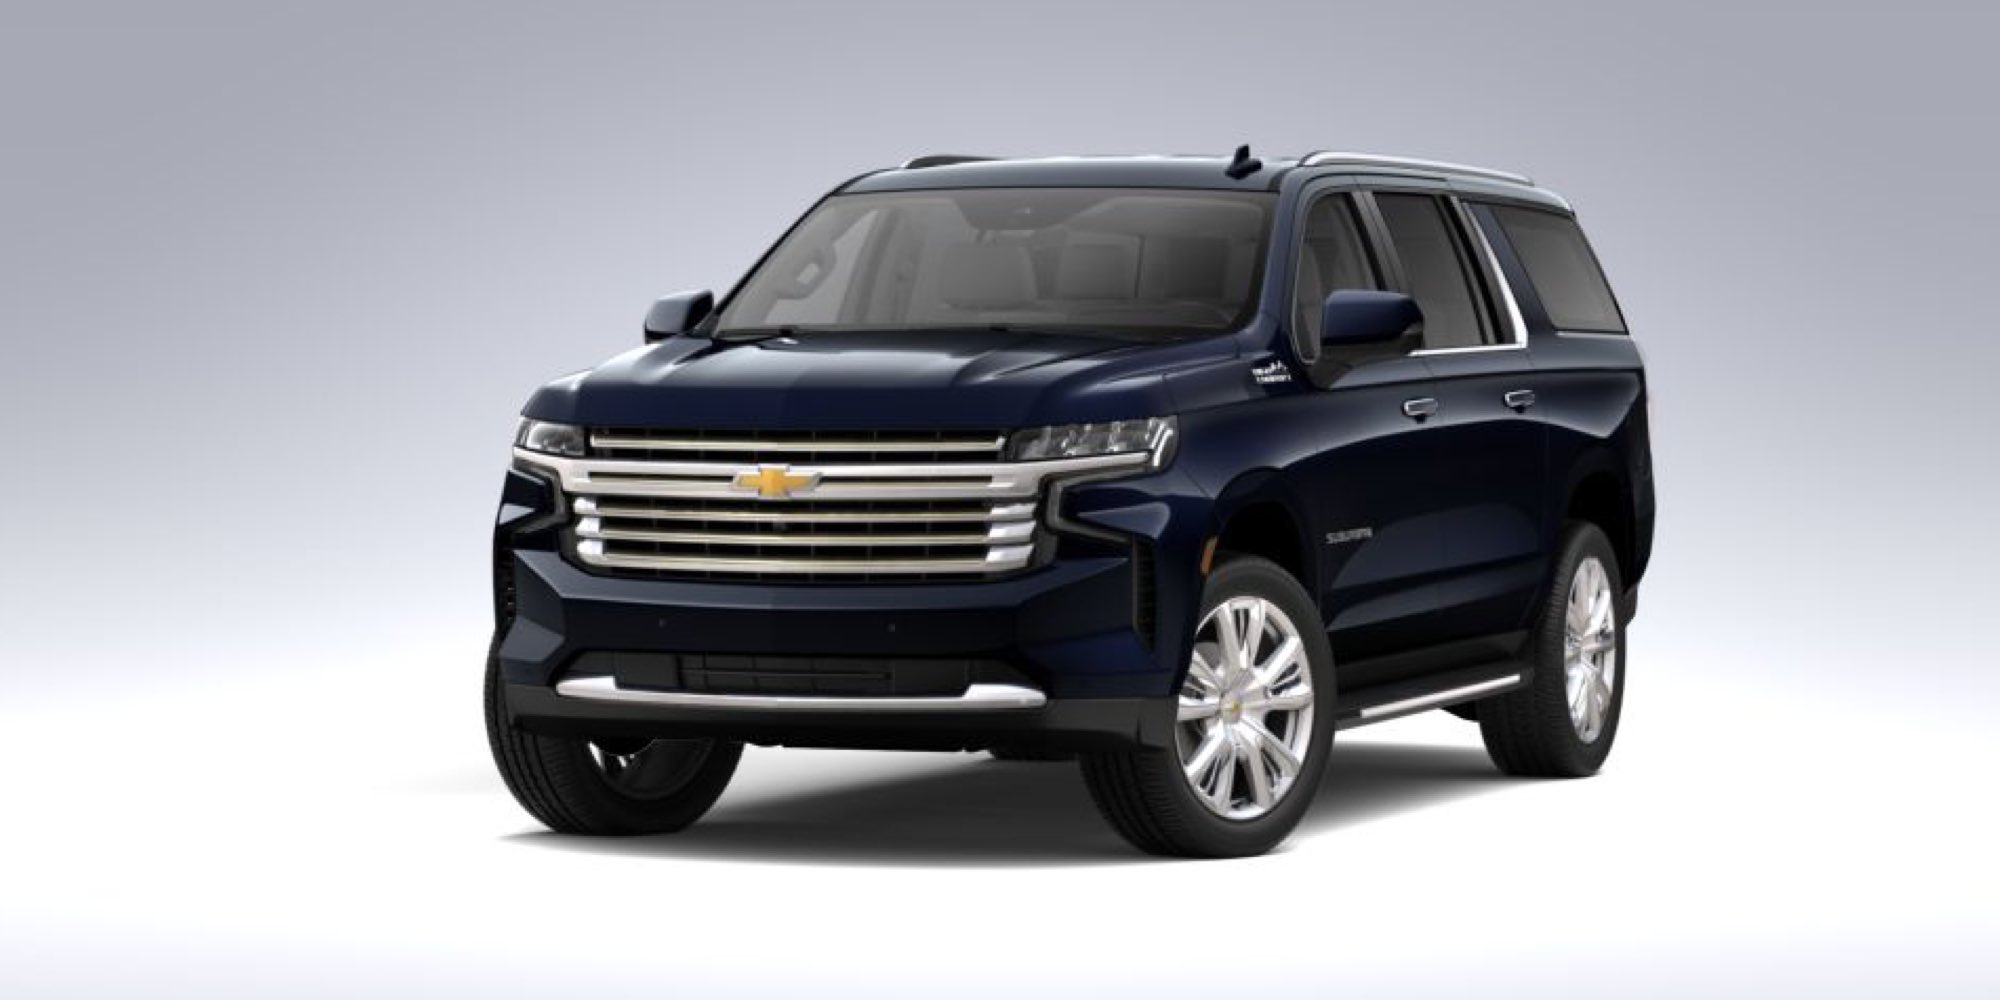 2021 Chevy Suburban in Midnight Blue Metallic